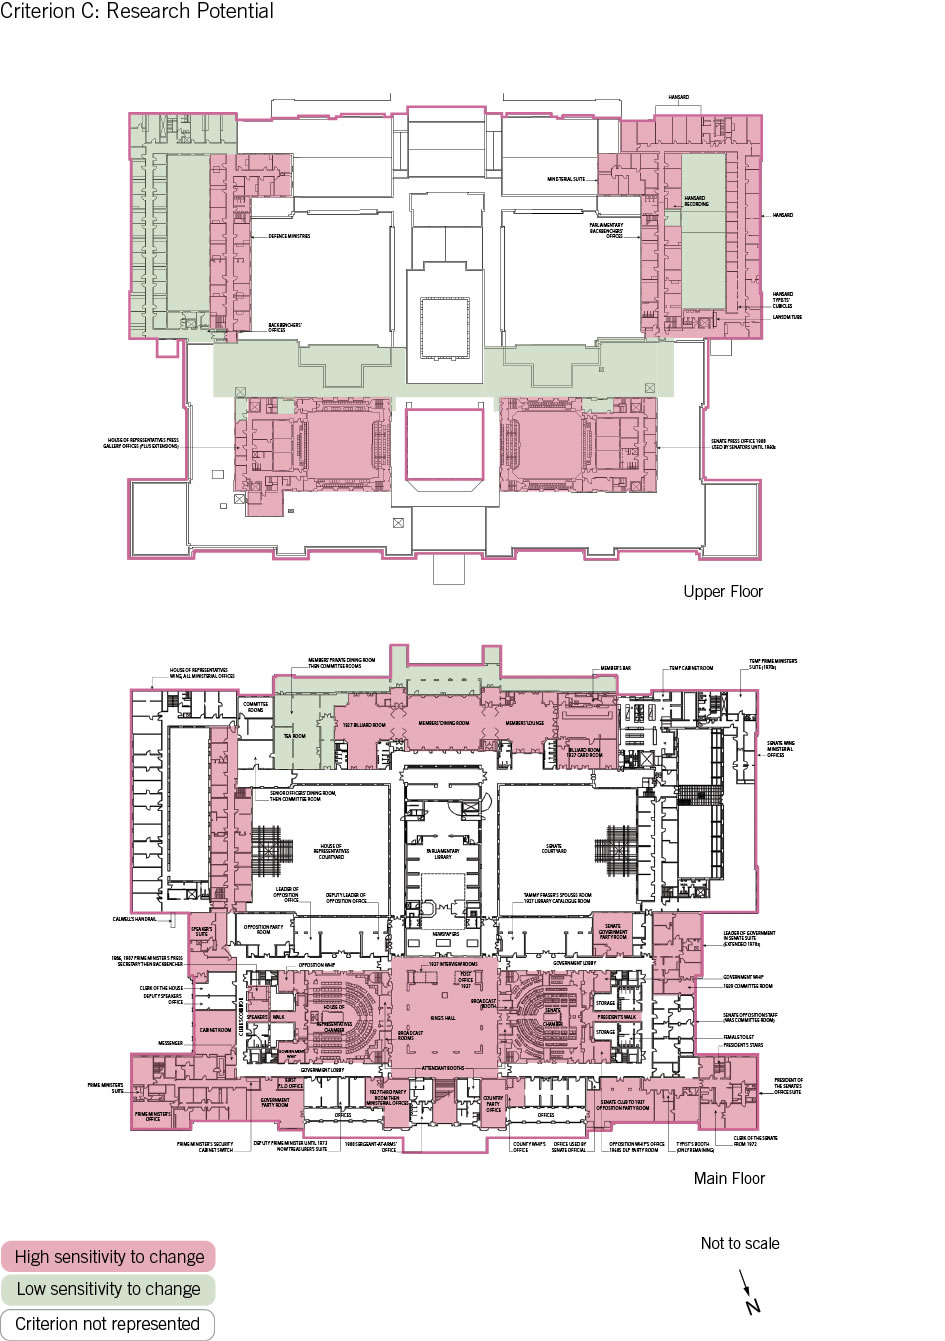 Old Parliament House upper and main floor plan showing the zones according to criterion C: research potential.